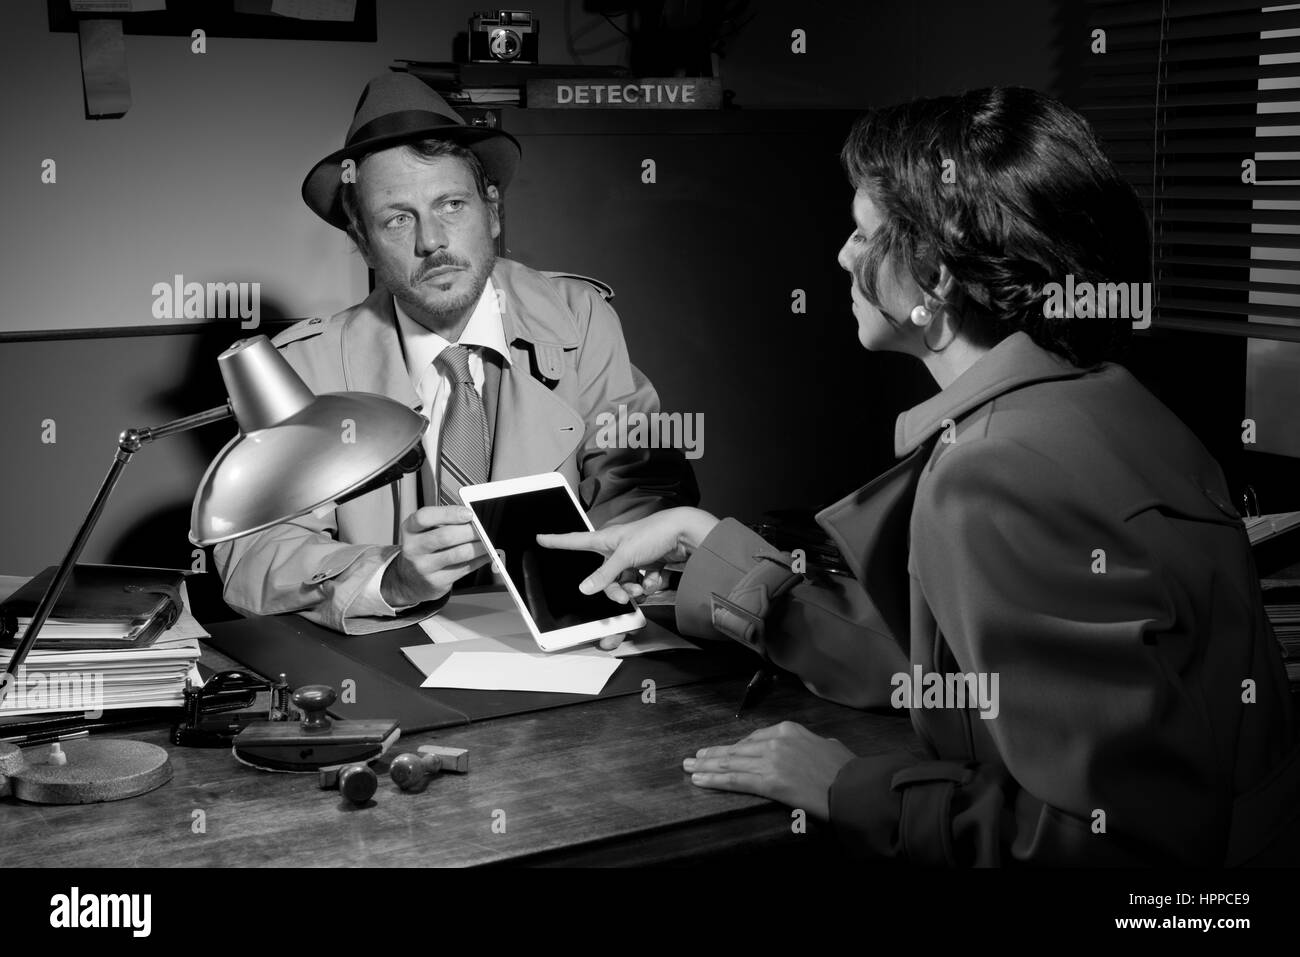 Woman touching detective's tablet sitting at his office desk. - Stock Image